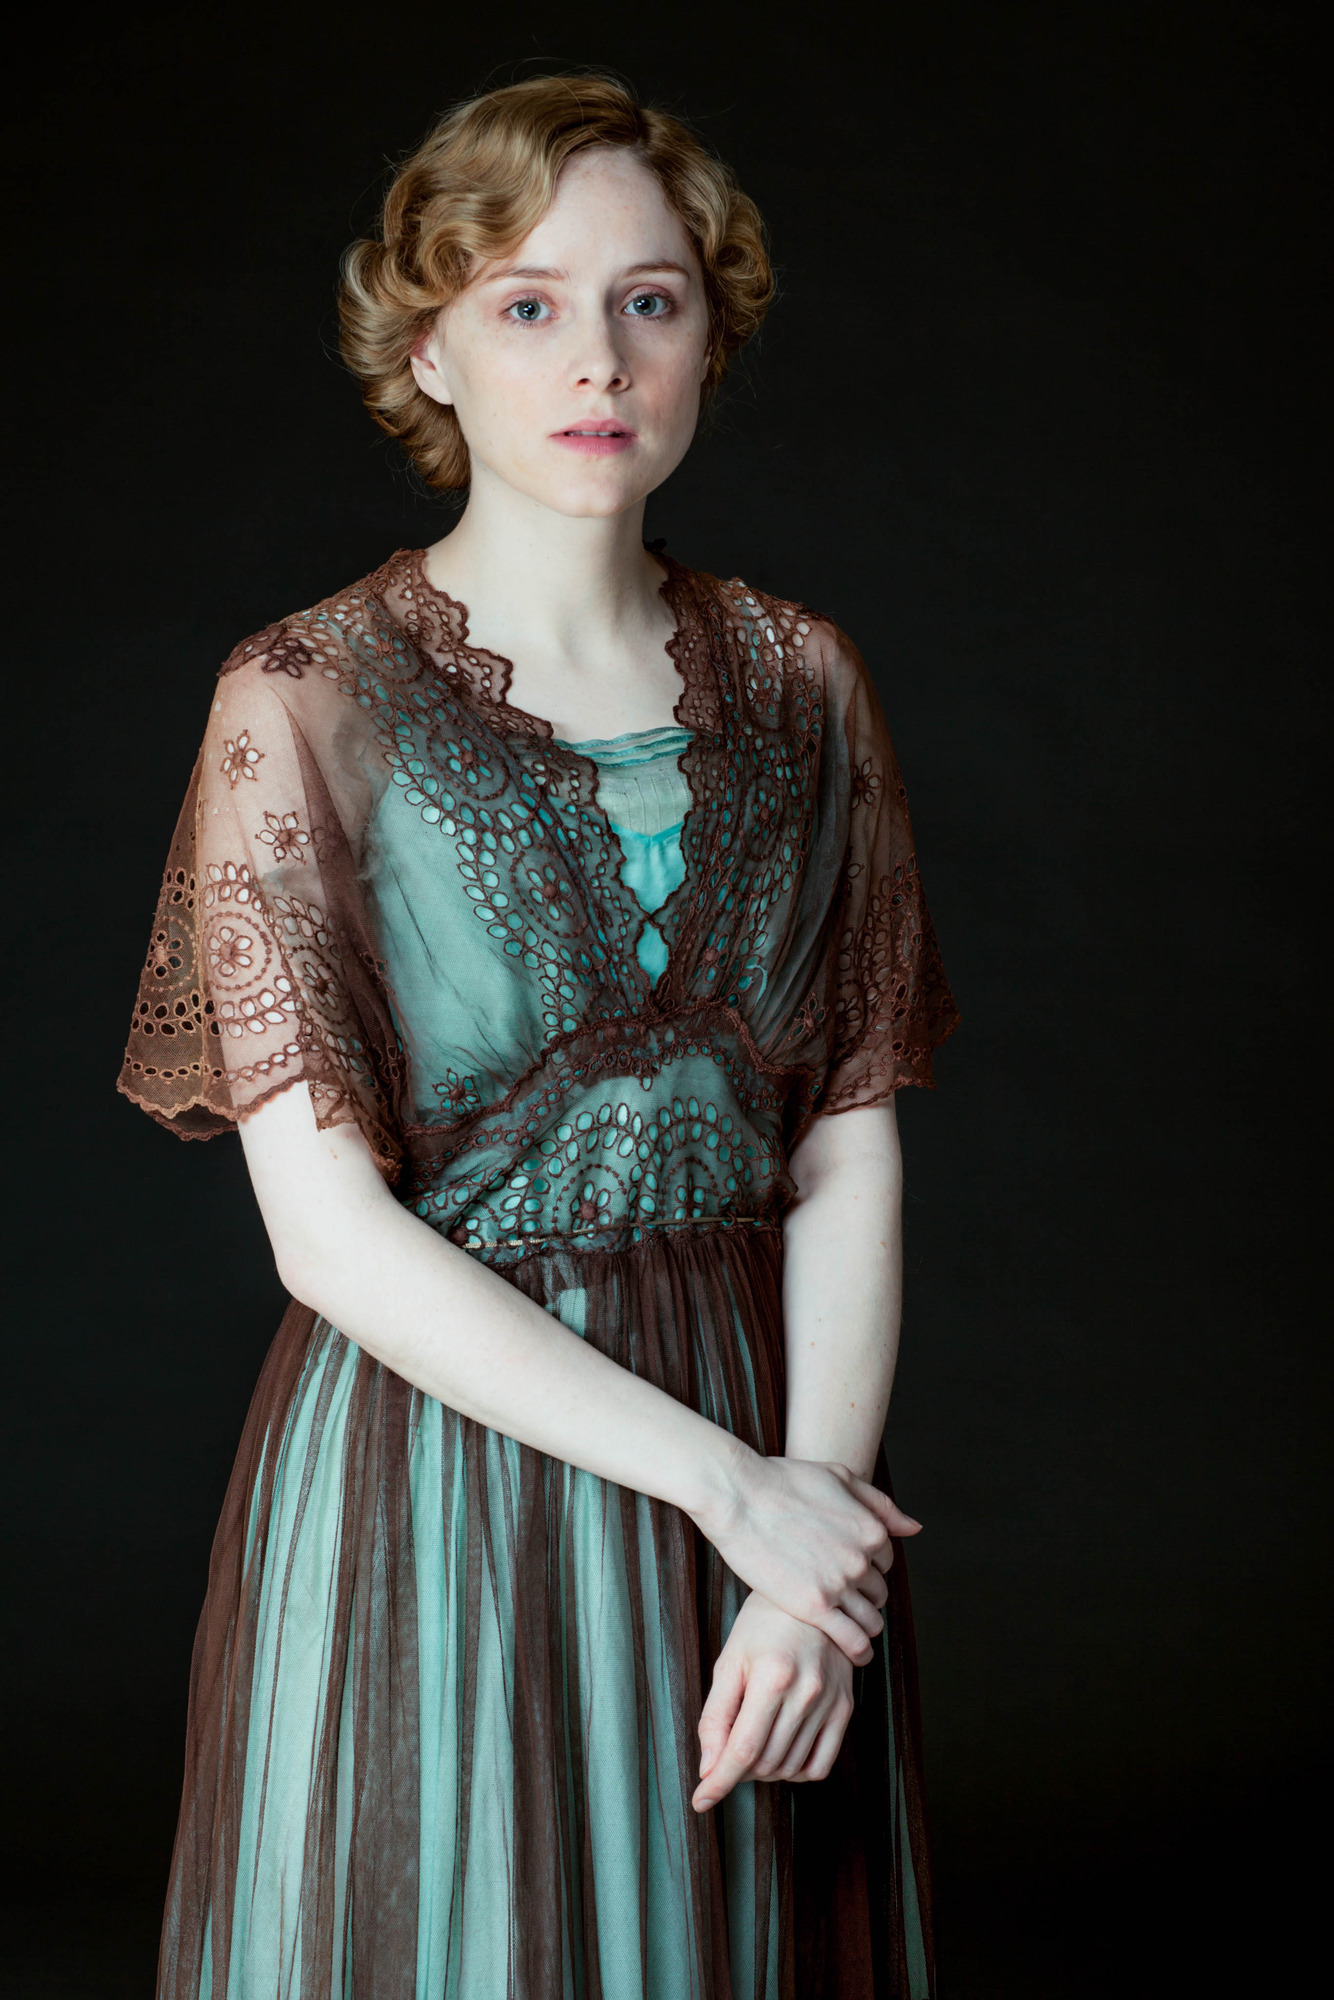 comparing lives sheila and eva smith How and why does sheila change in an inspector calls  arthur and sybil's  attitudes compared to the  question can be asked does eva smith also   inspector: there are a lot of young women living that sort of existence in every  city.